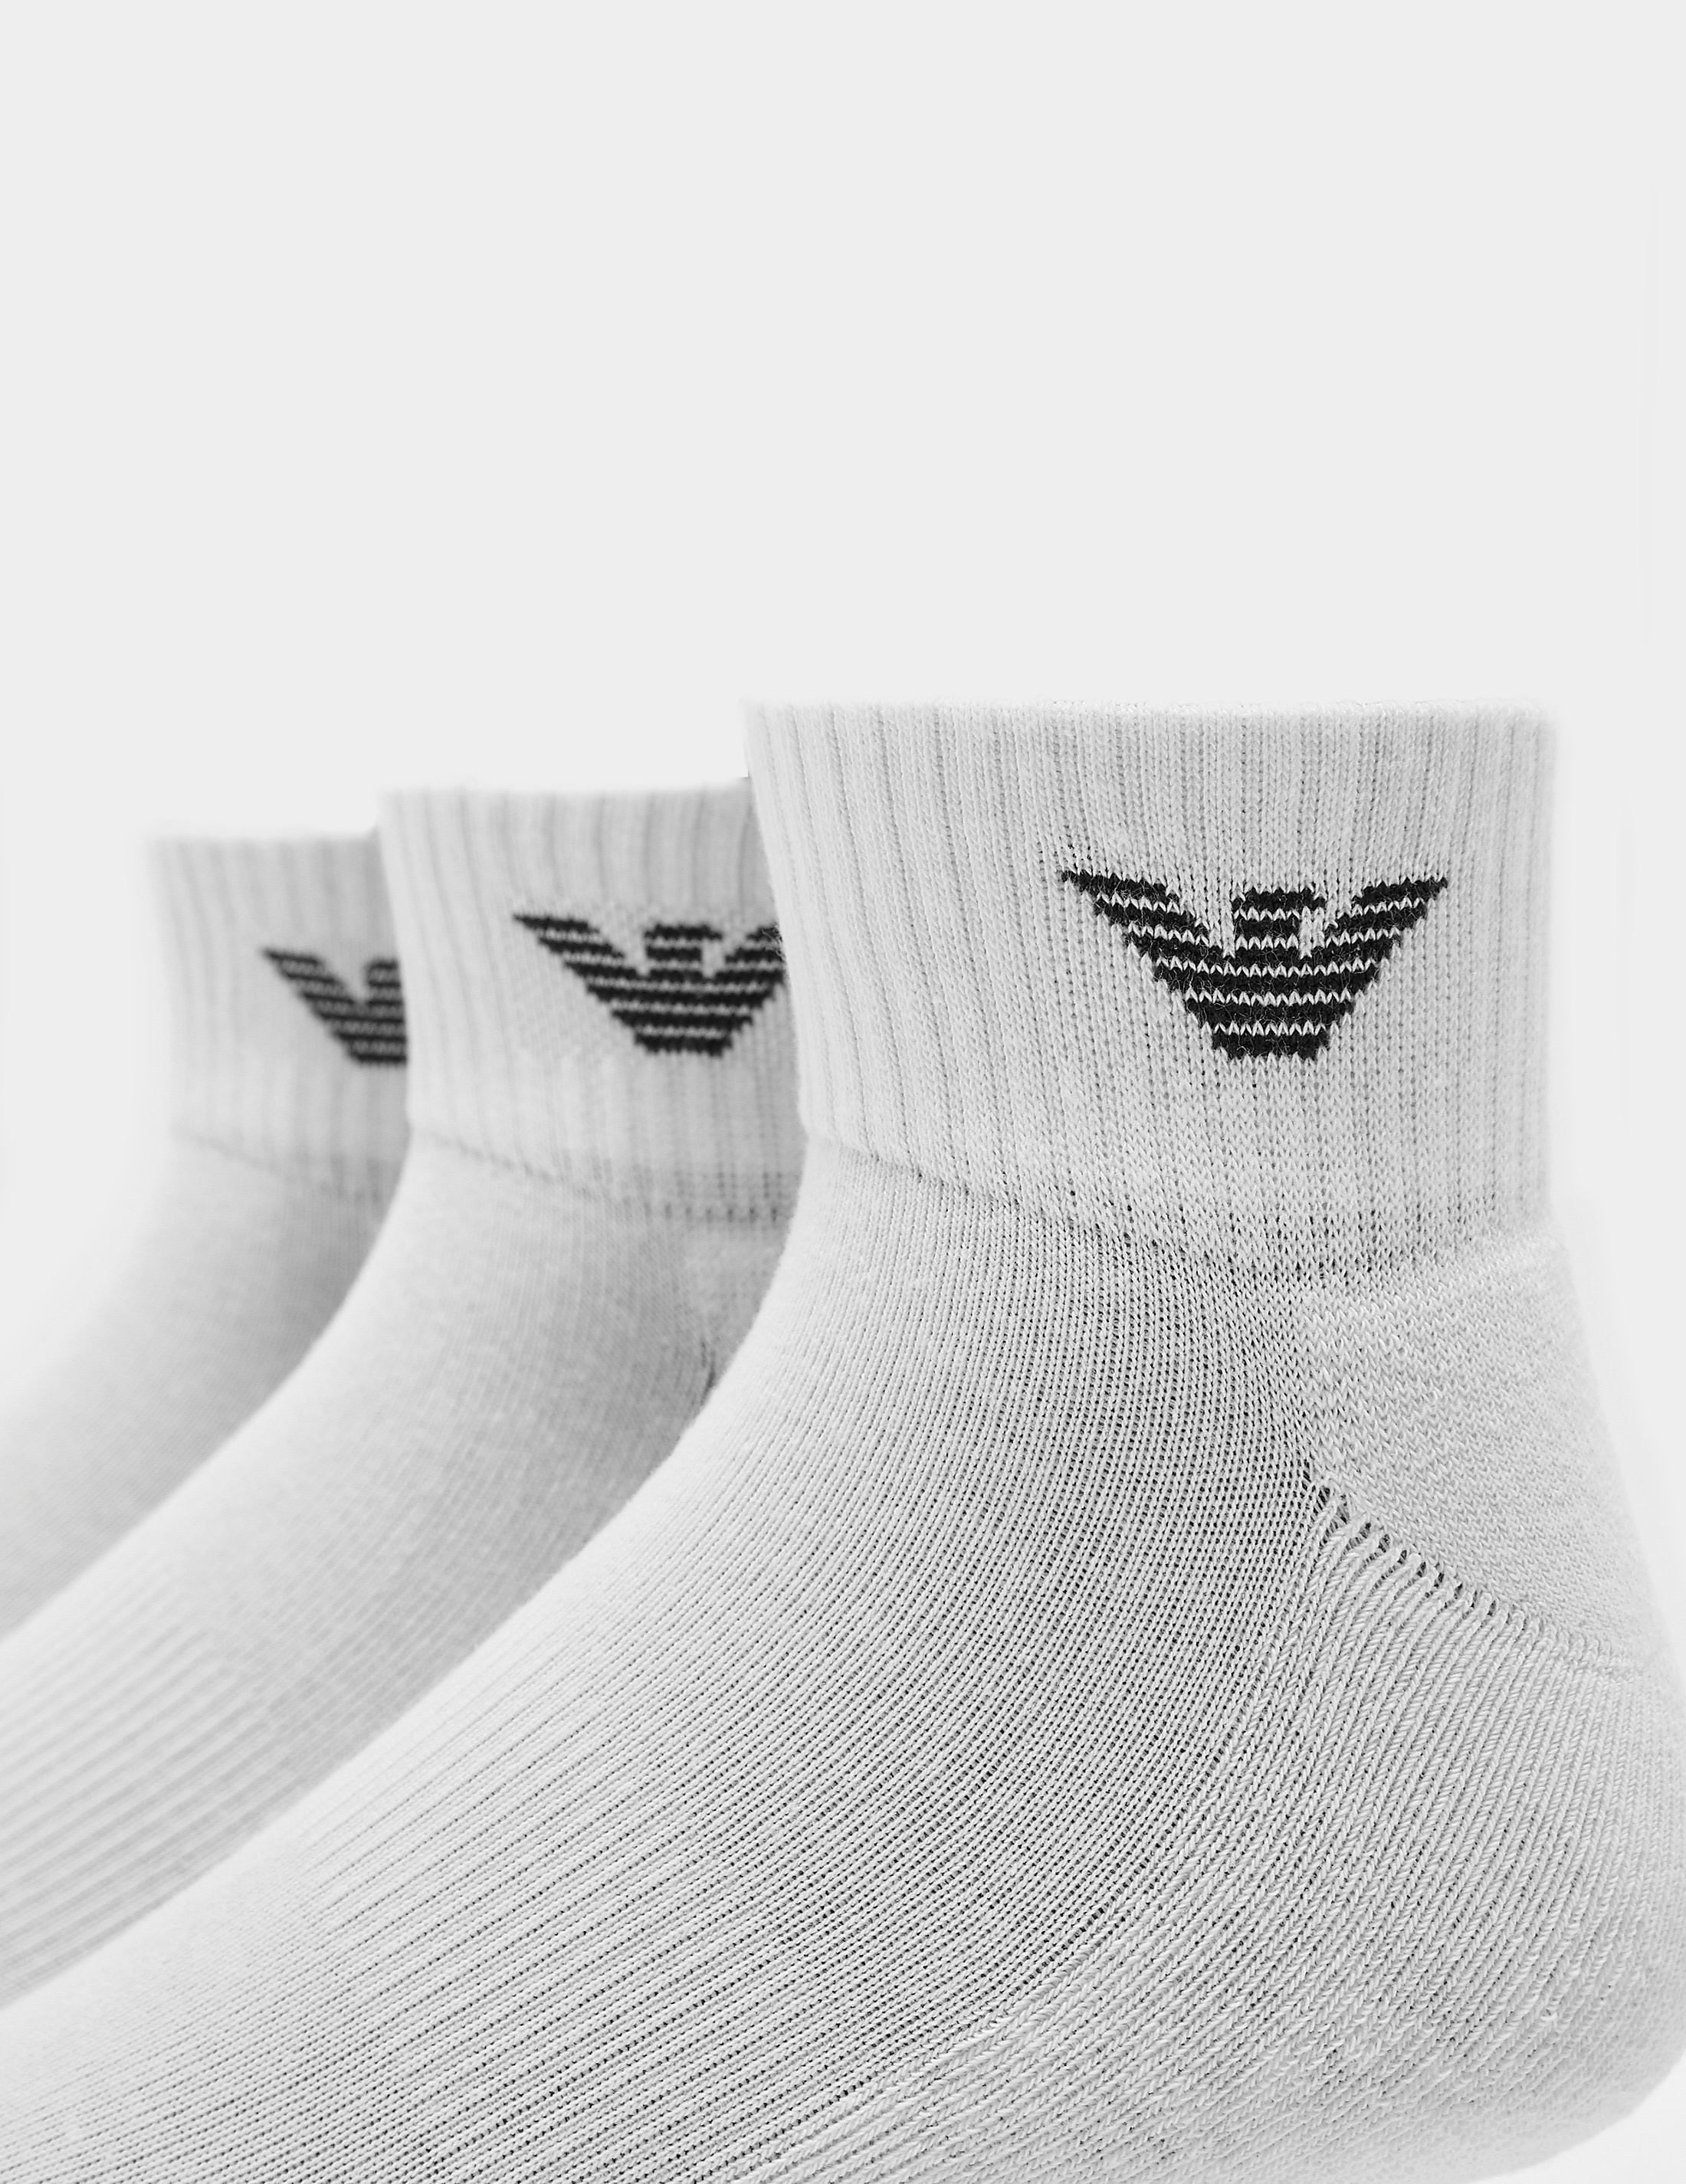 Emporio Armani Eagle Ankle Socks